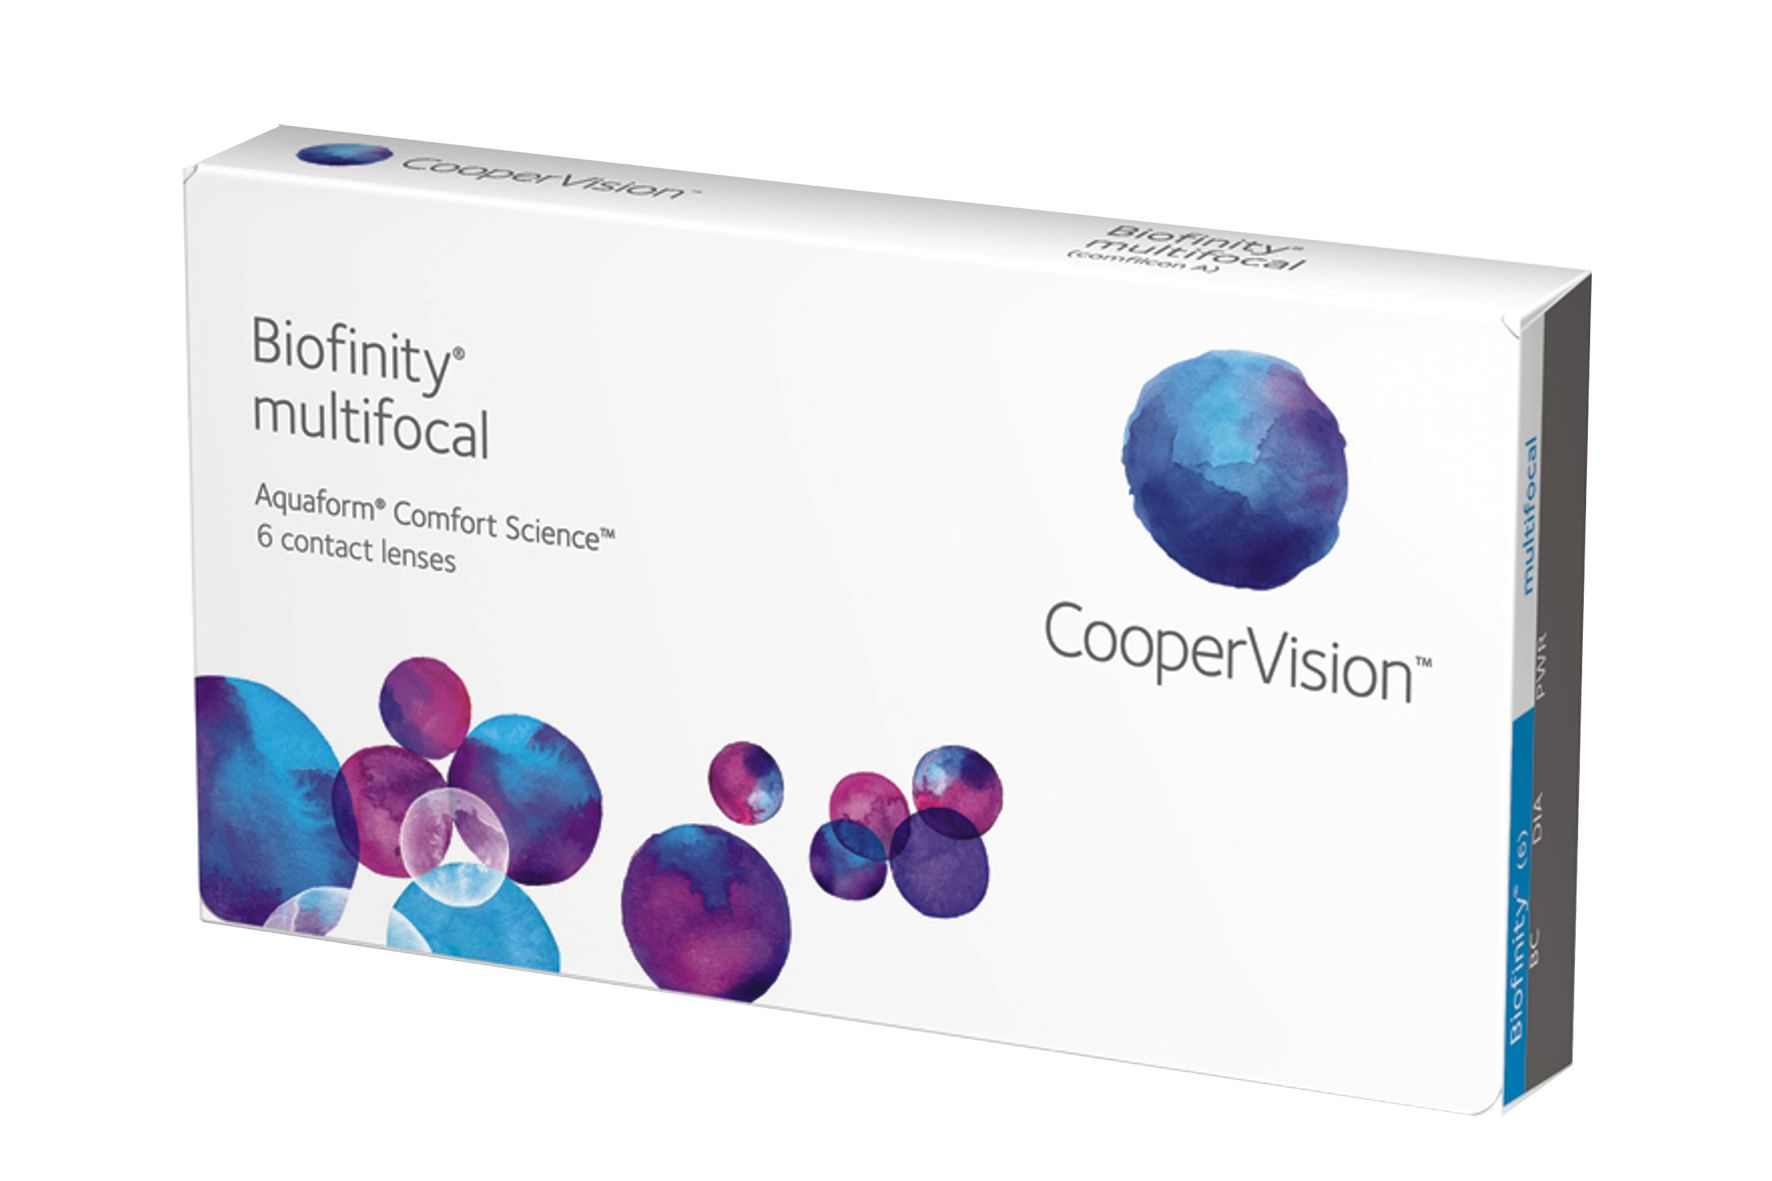 Biofinity Multifocal Biofinity Toric Contact Lenses Contact Lenses